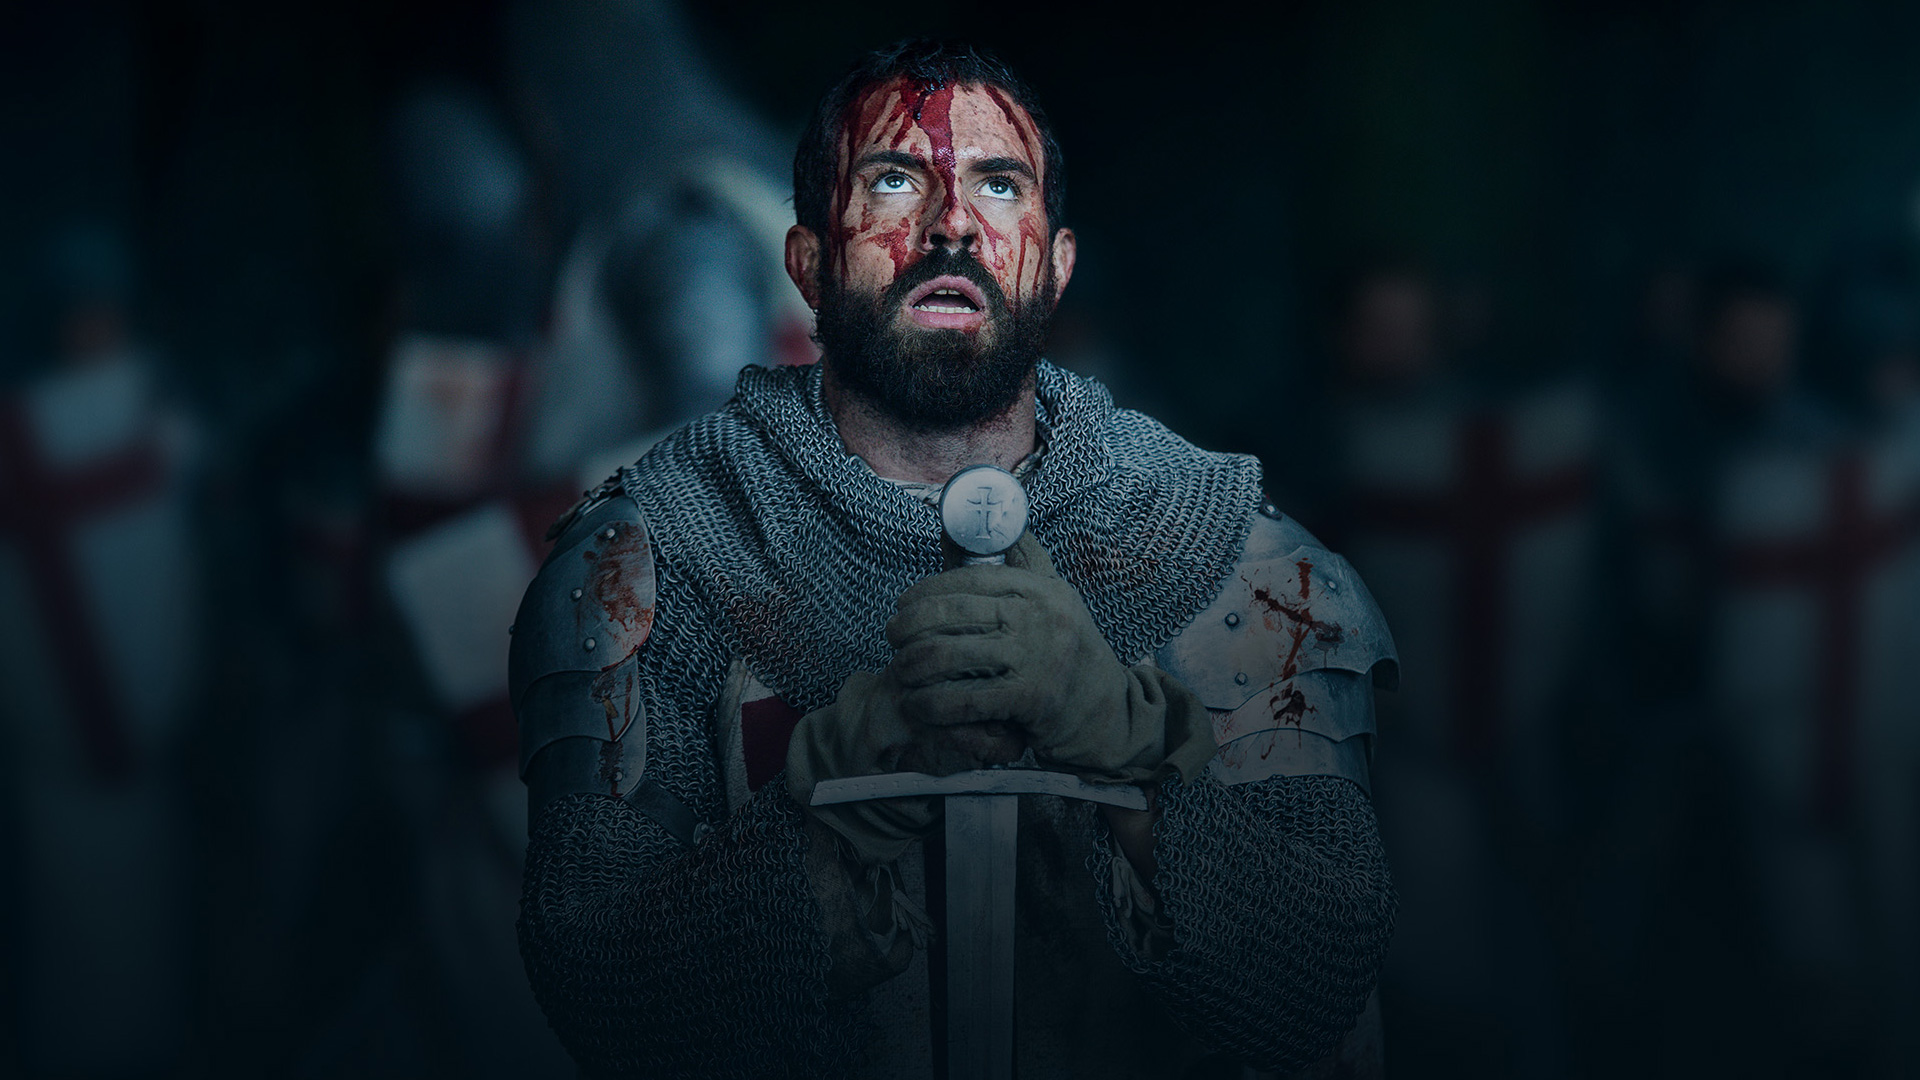 https://cinemaplanet.pt/wp-content/uploads/2018/03/knightfall-5a34f66b5514e.jpg